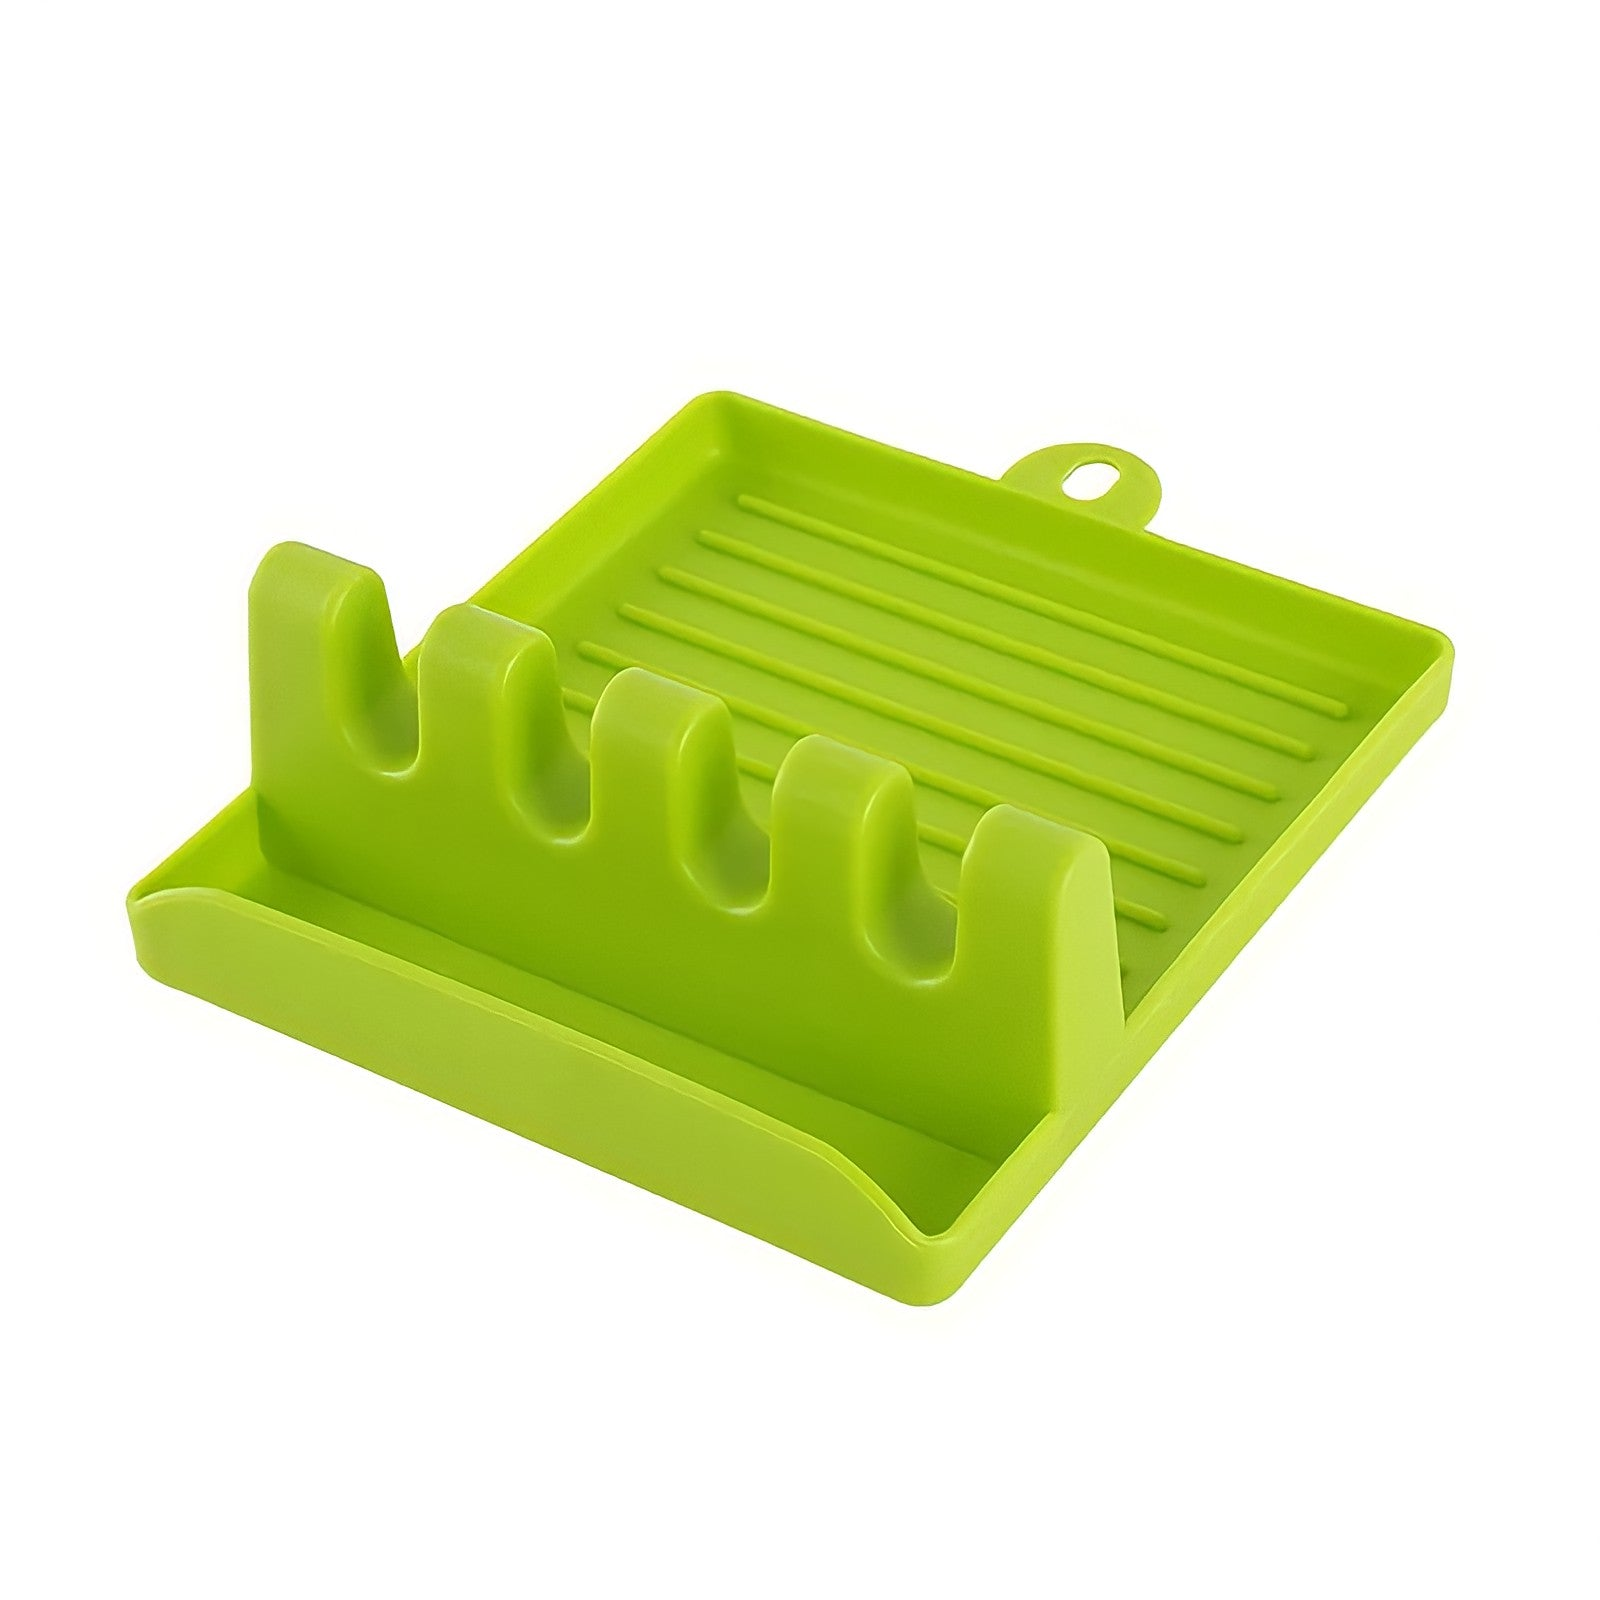 Heat - Resistant Utensil Rack